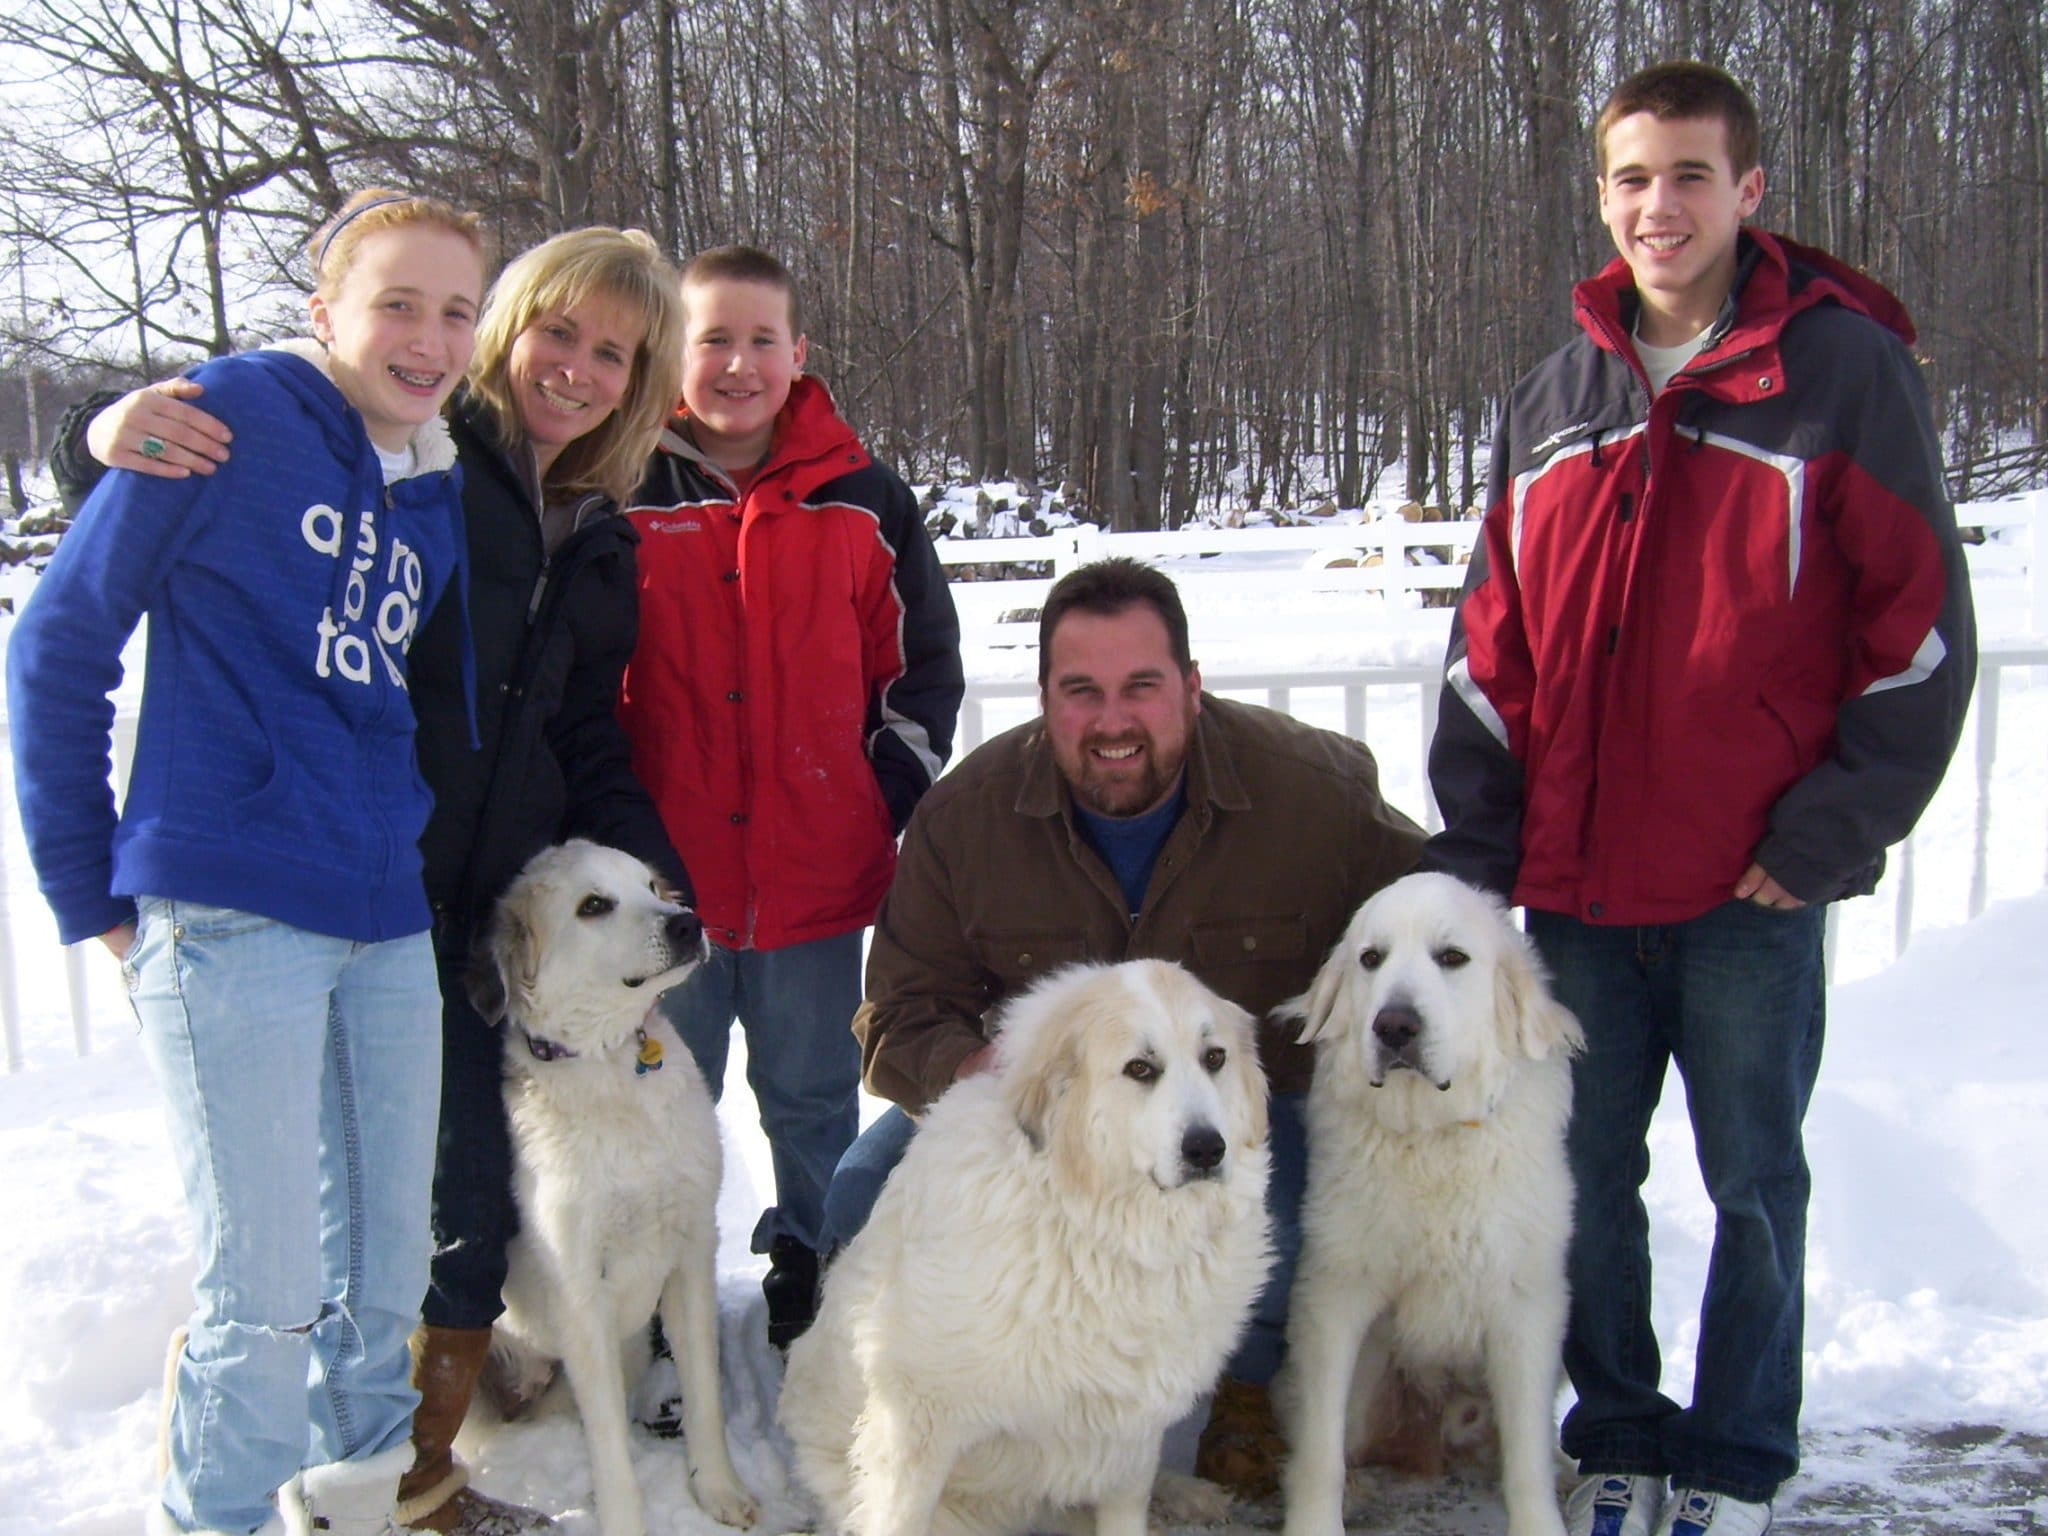 Joel Lewandowski with family and dogs